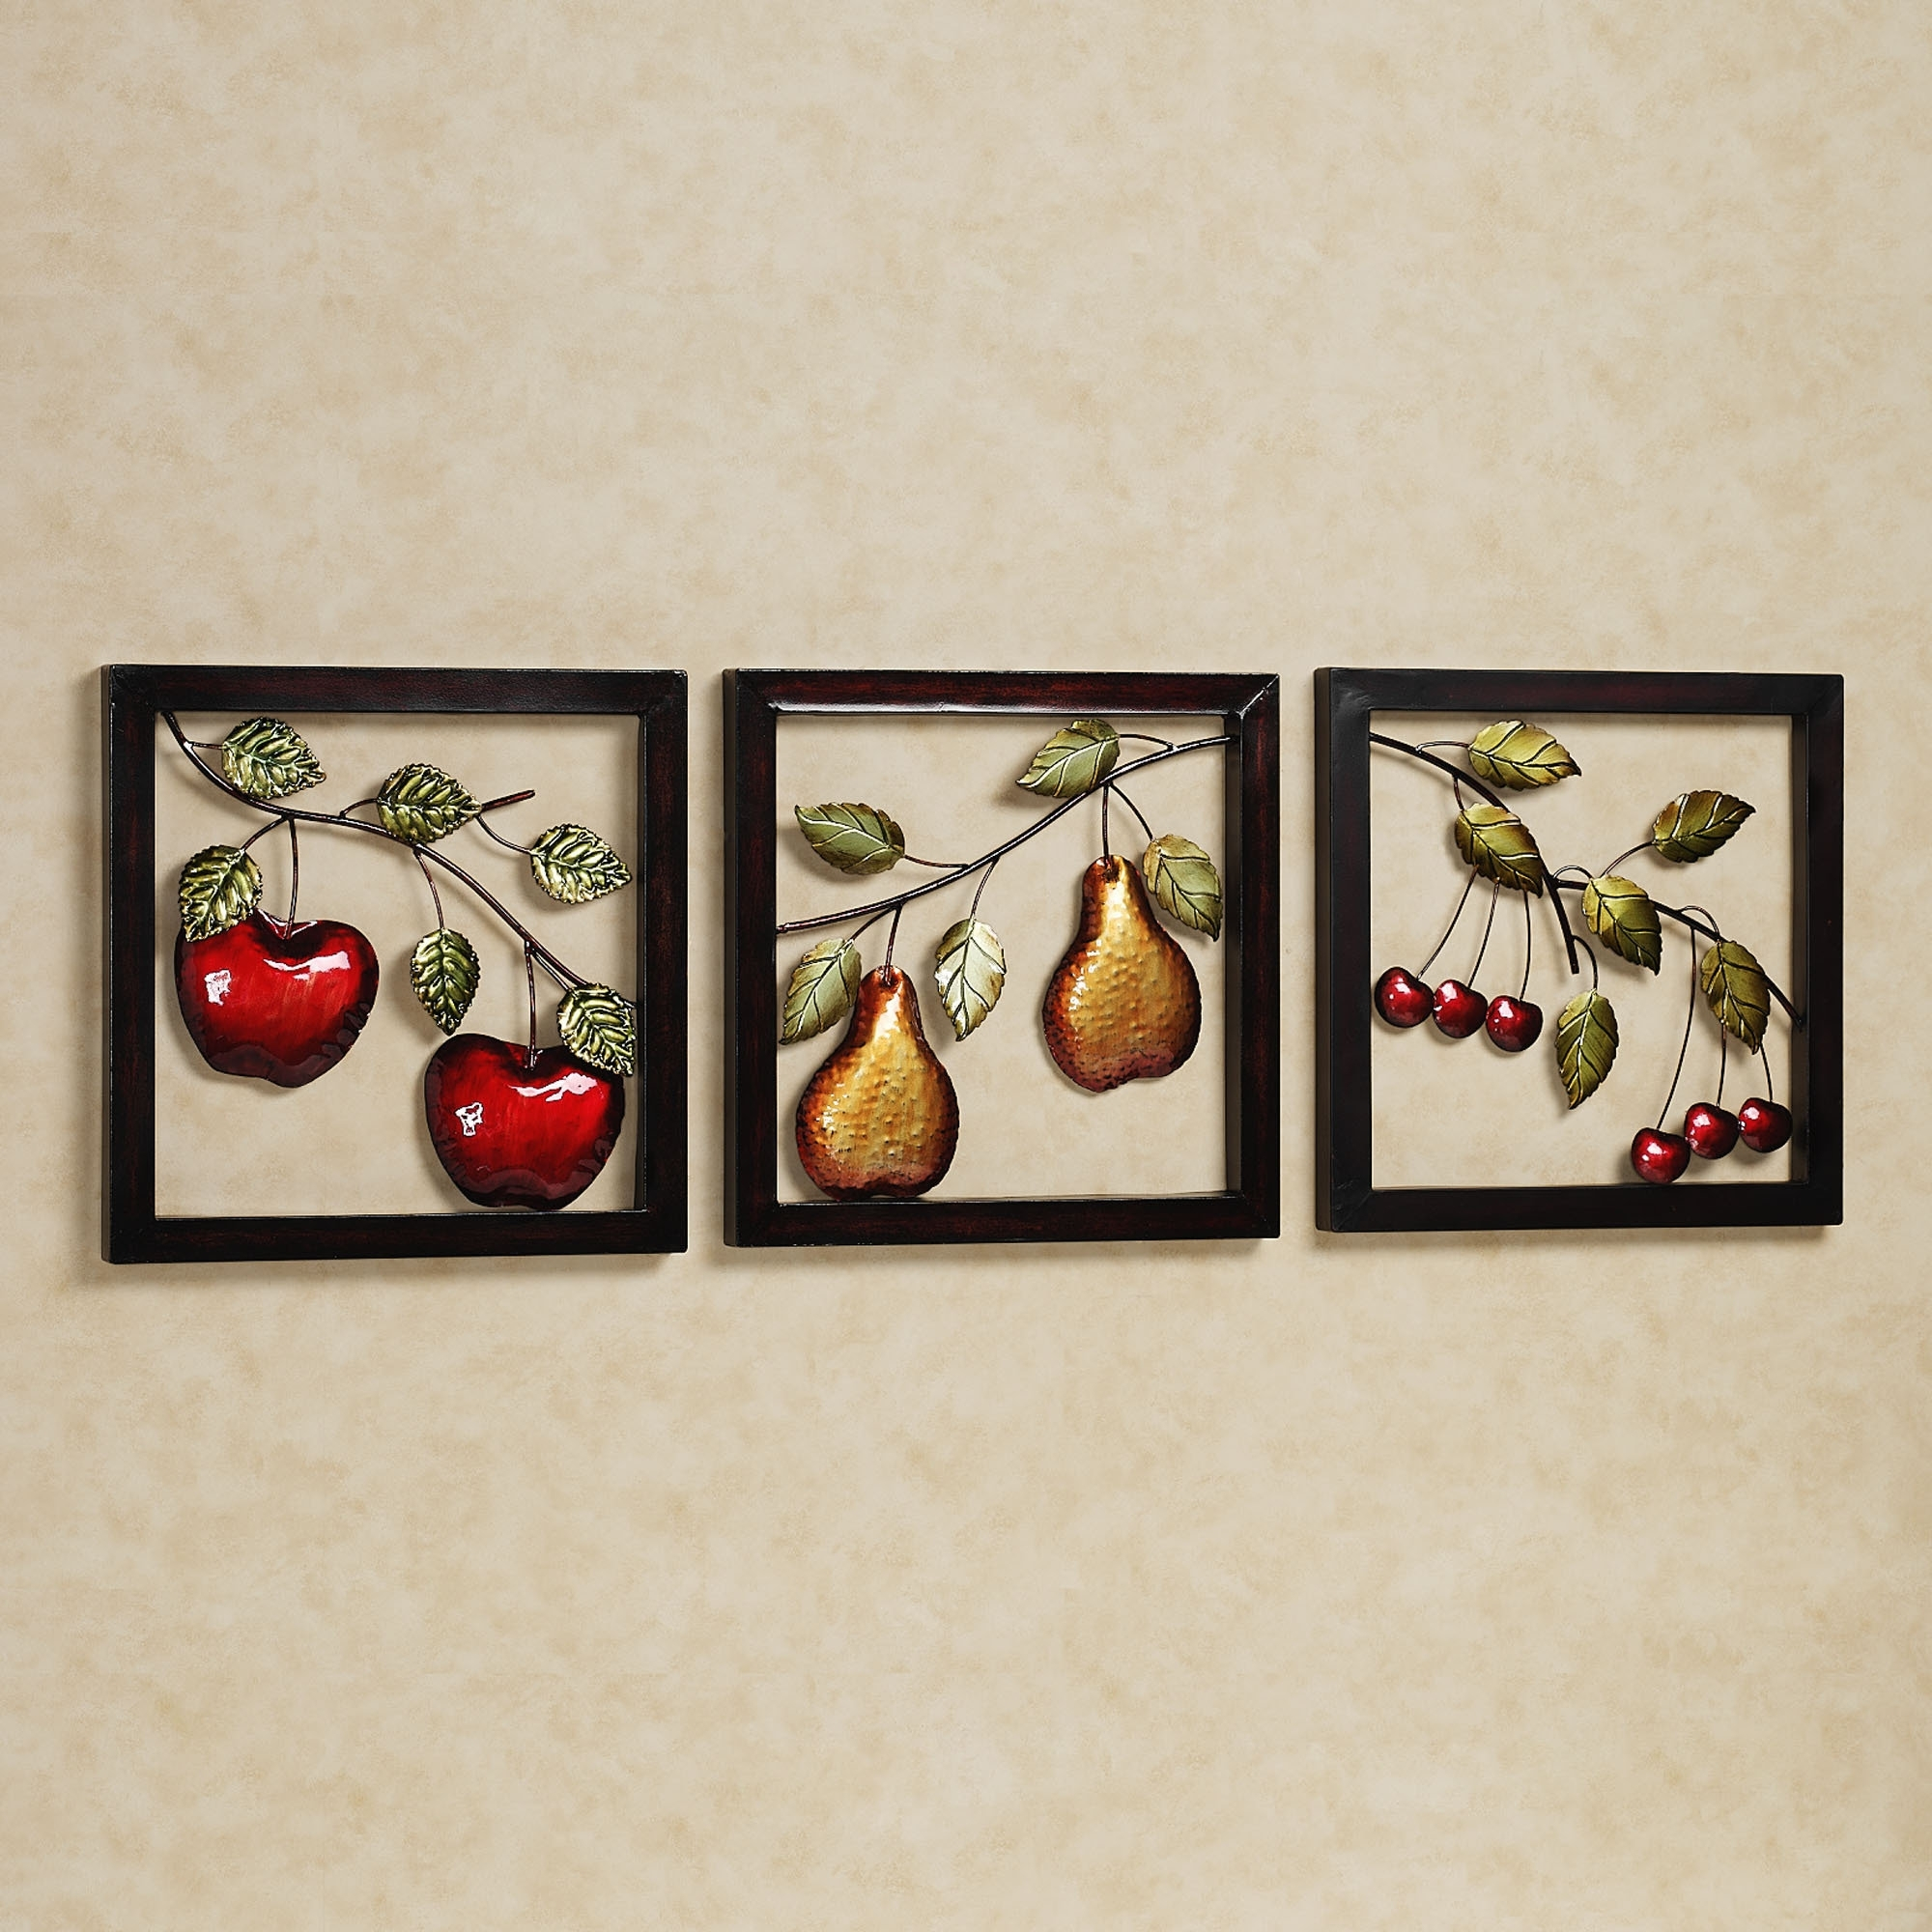 Beautiful Fruits Metal Wall Art Decor Kitchen With Black Frame Ideas Inside Current Wall Art For Kitchen (View 2 of 20)